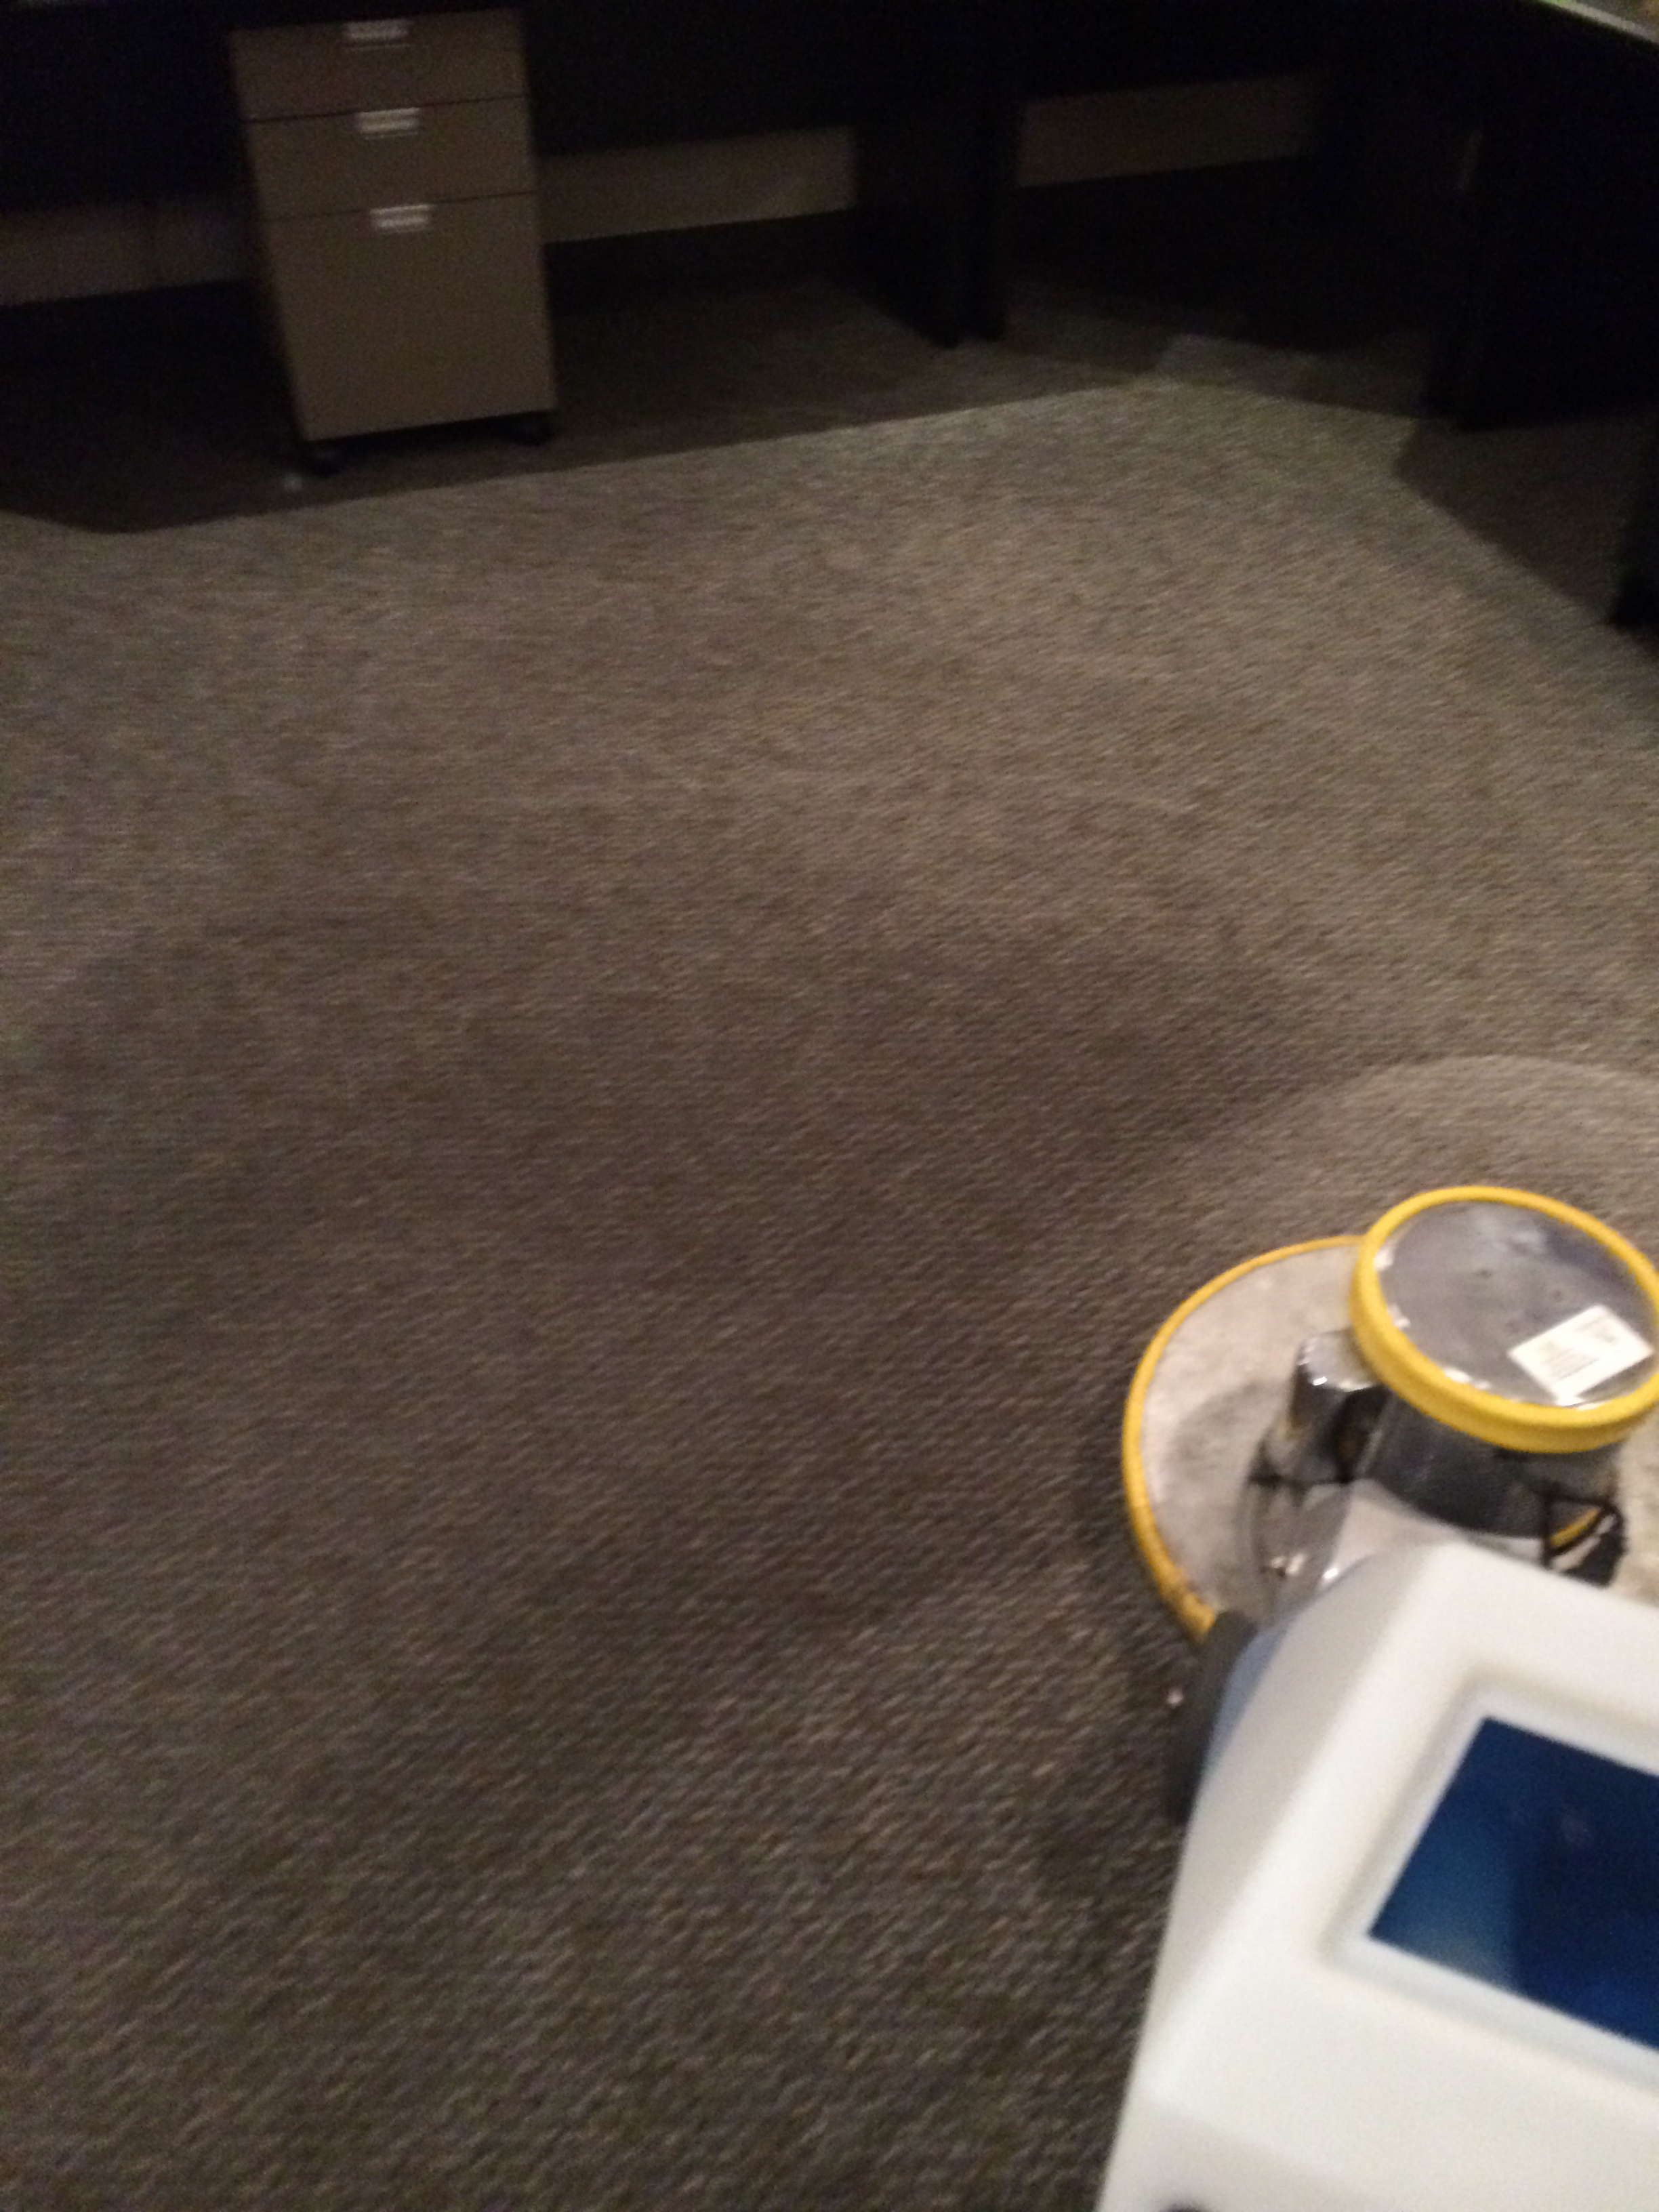 Before-Carpet Wash